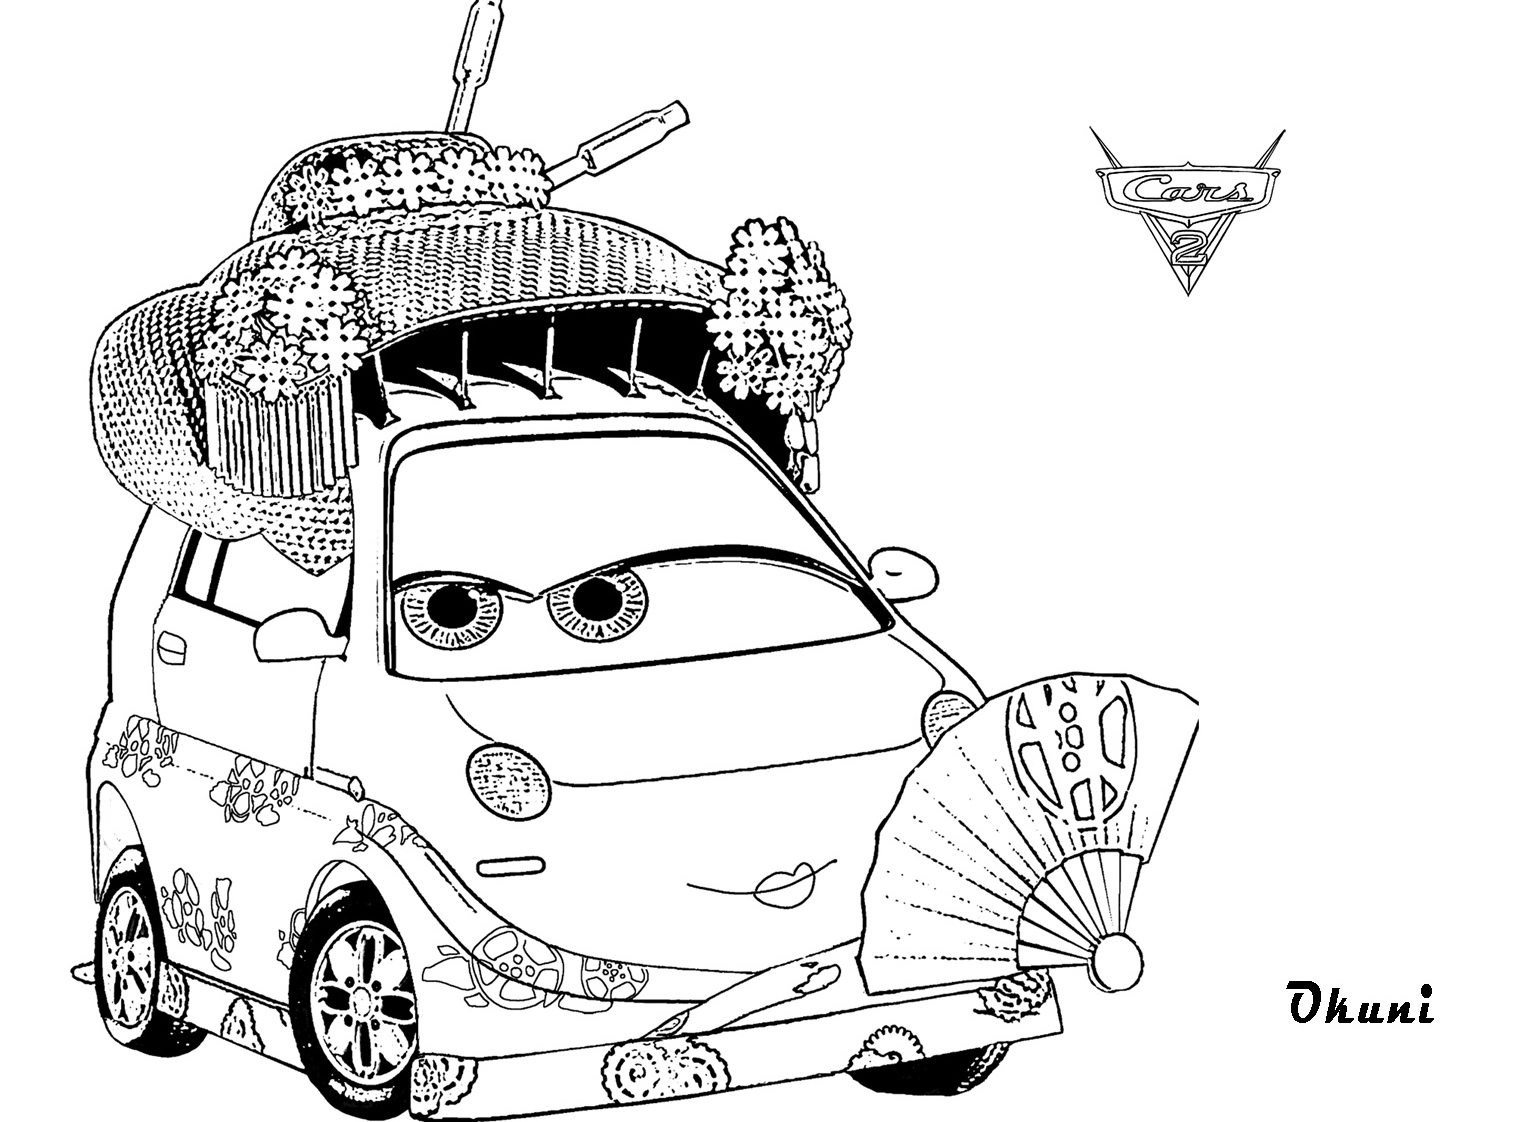 Okuni Coloring Pages for Kids Cars 2 to Print Of Cars 2 Coloring Pages with Cars 2 Coloring Pages with Cars 2 Gallery